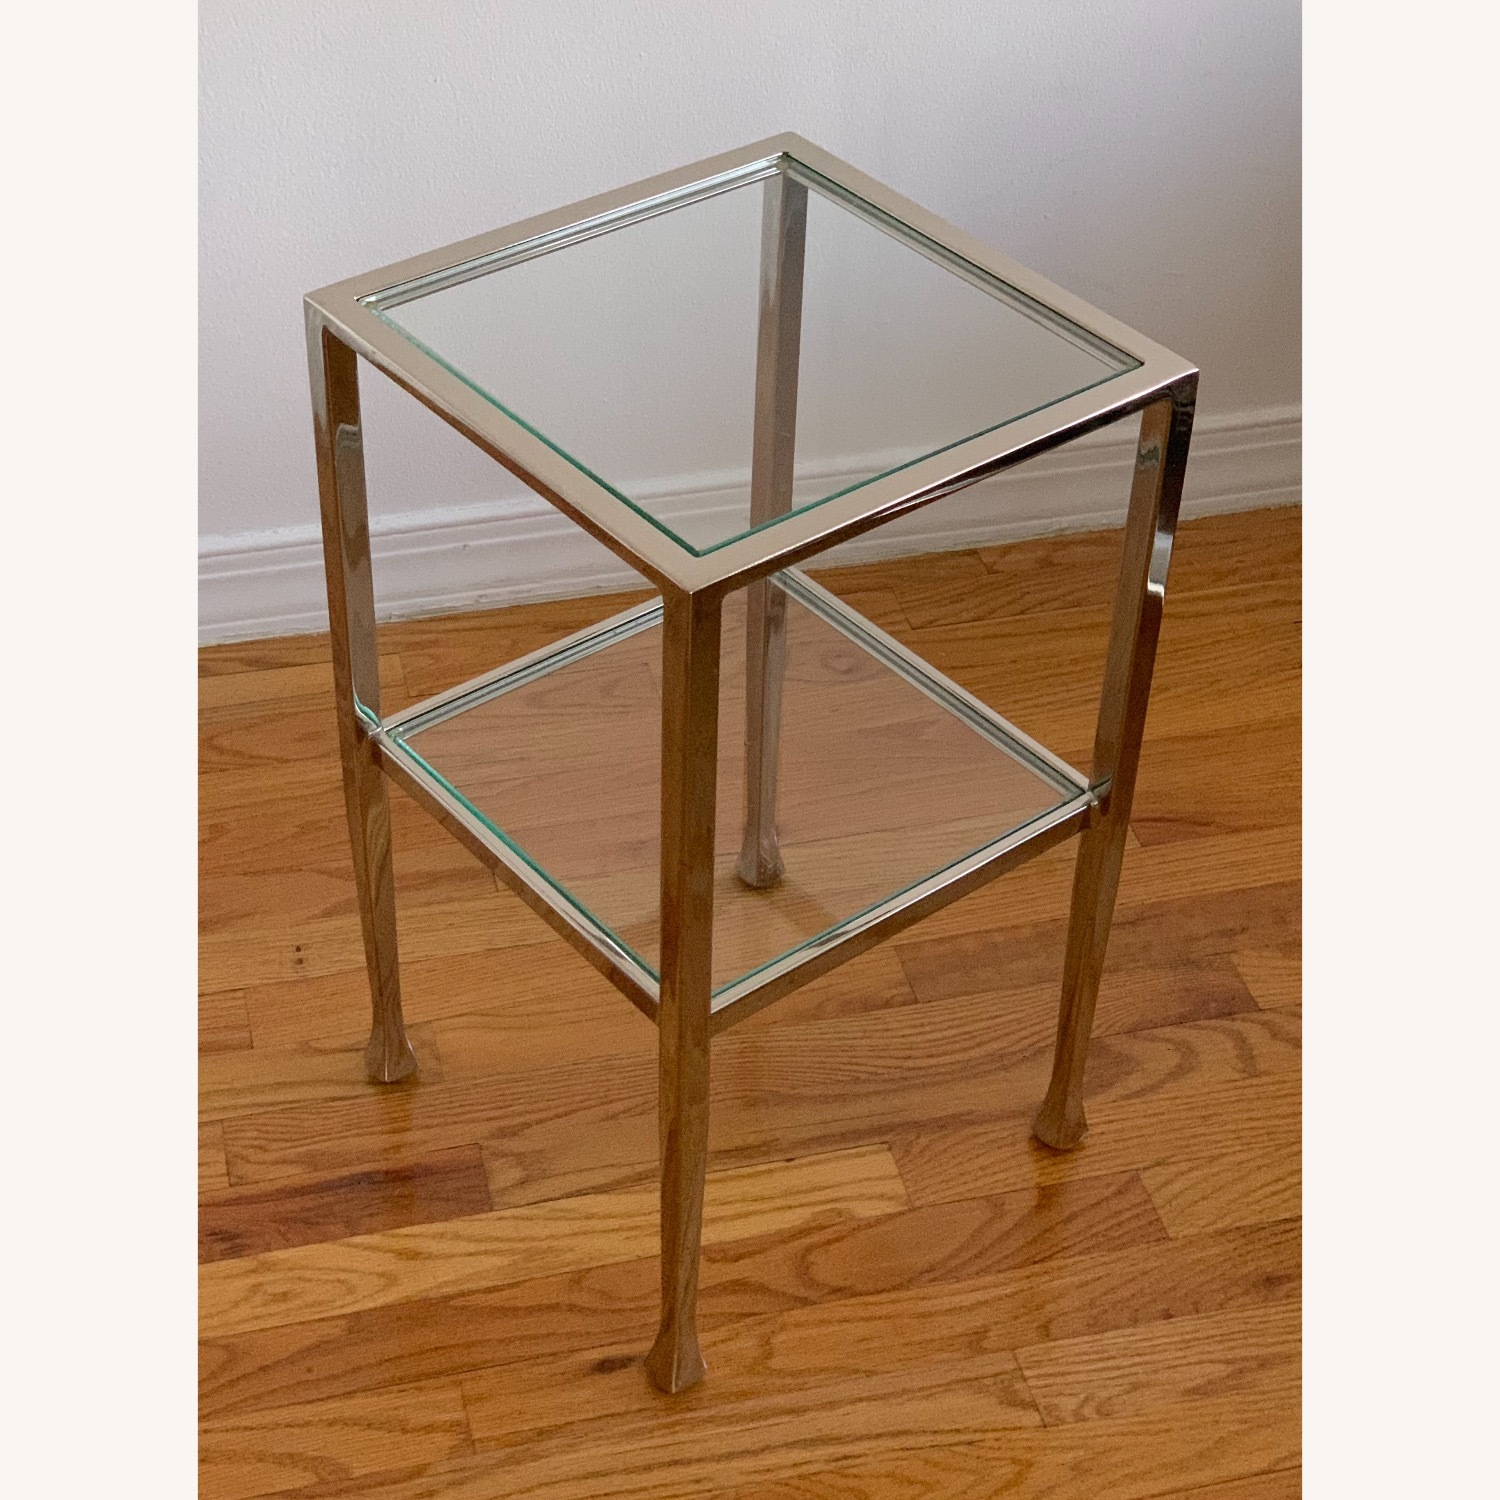 Pottery Barn Nickel End Tables - image-7